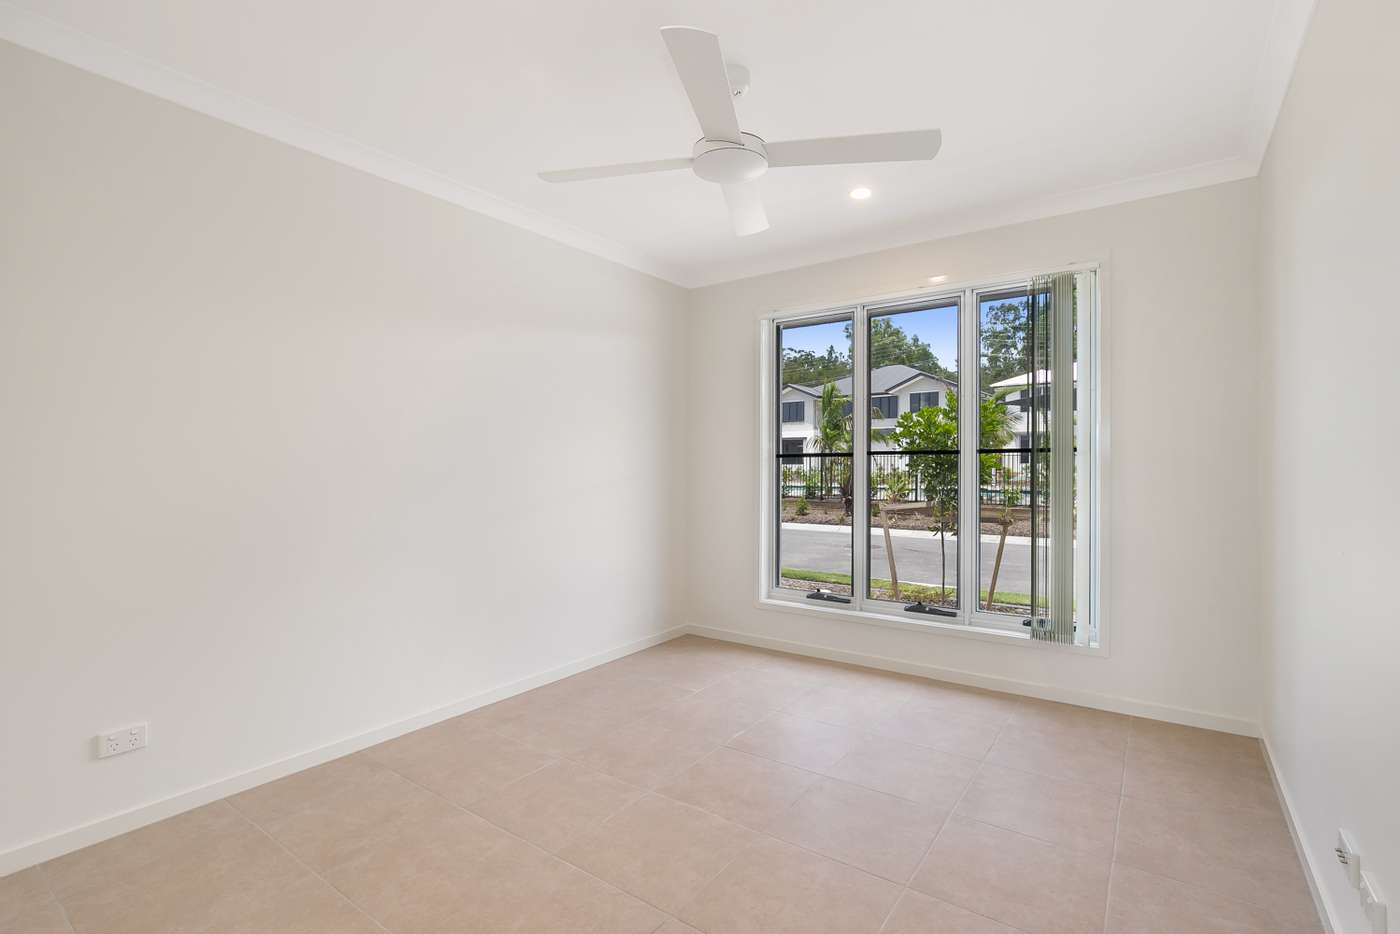 Fifth view of Homely townhouse listing, 25/430 Gainsborough Drive, Pimpama QLD 4209